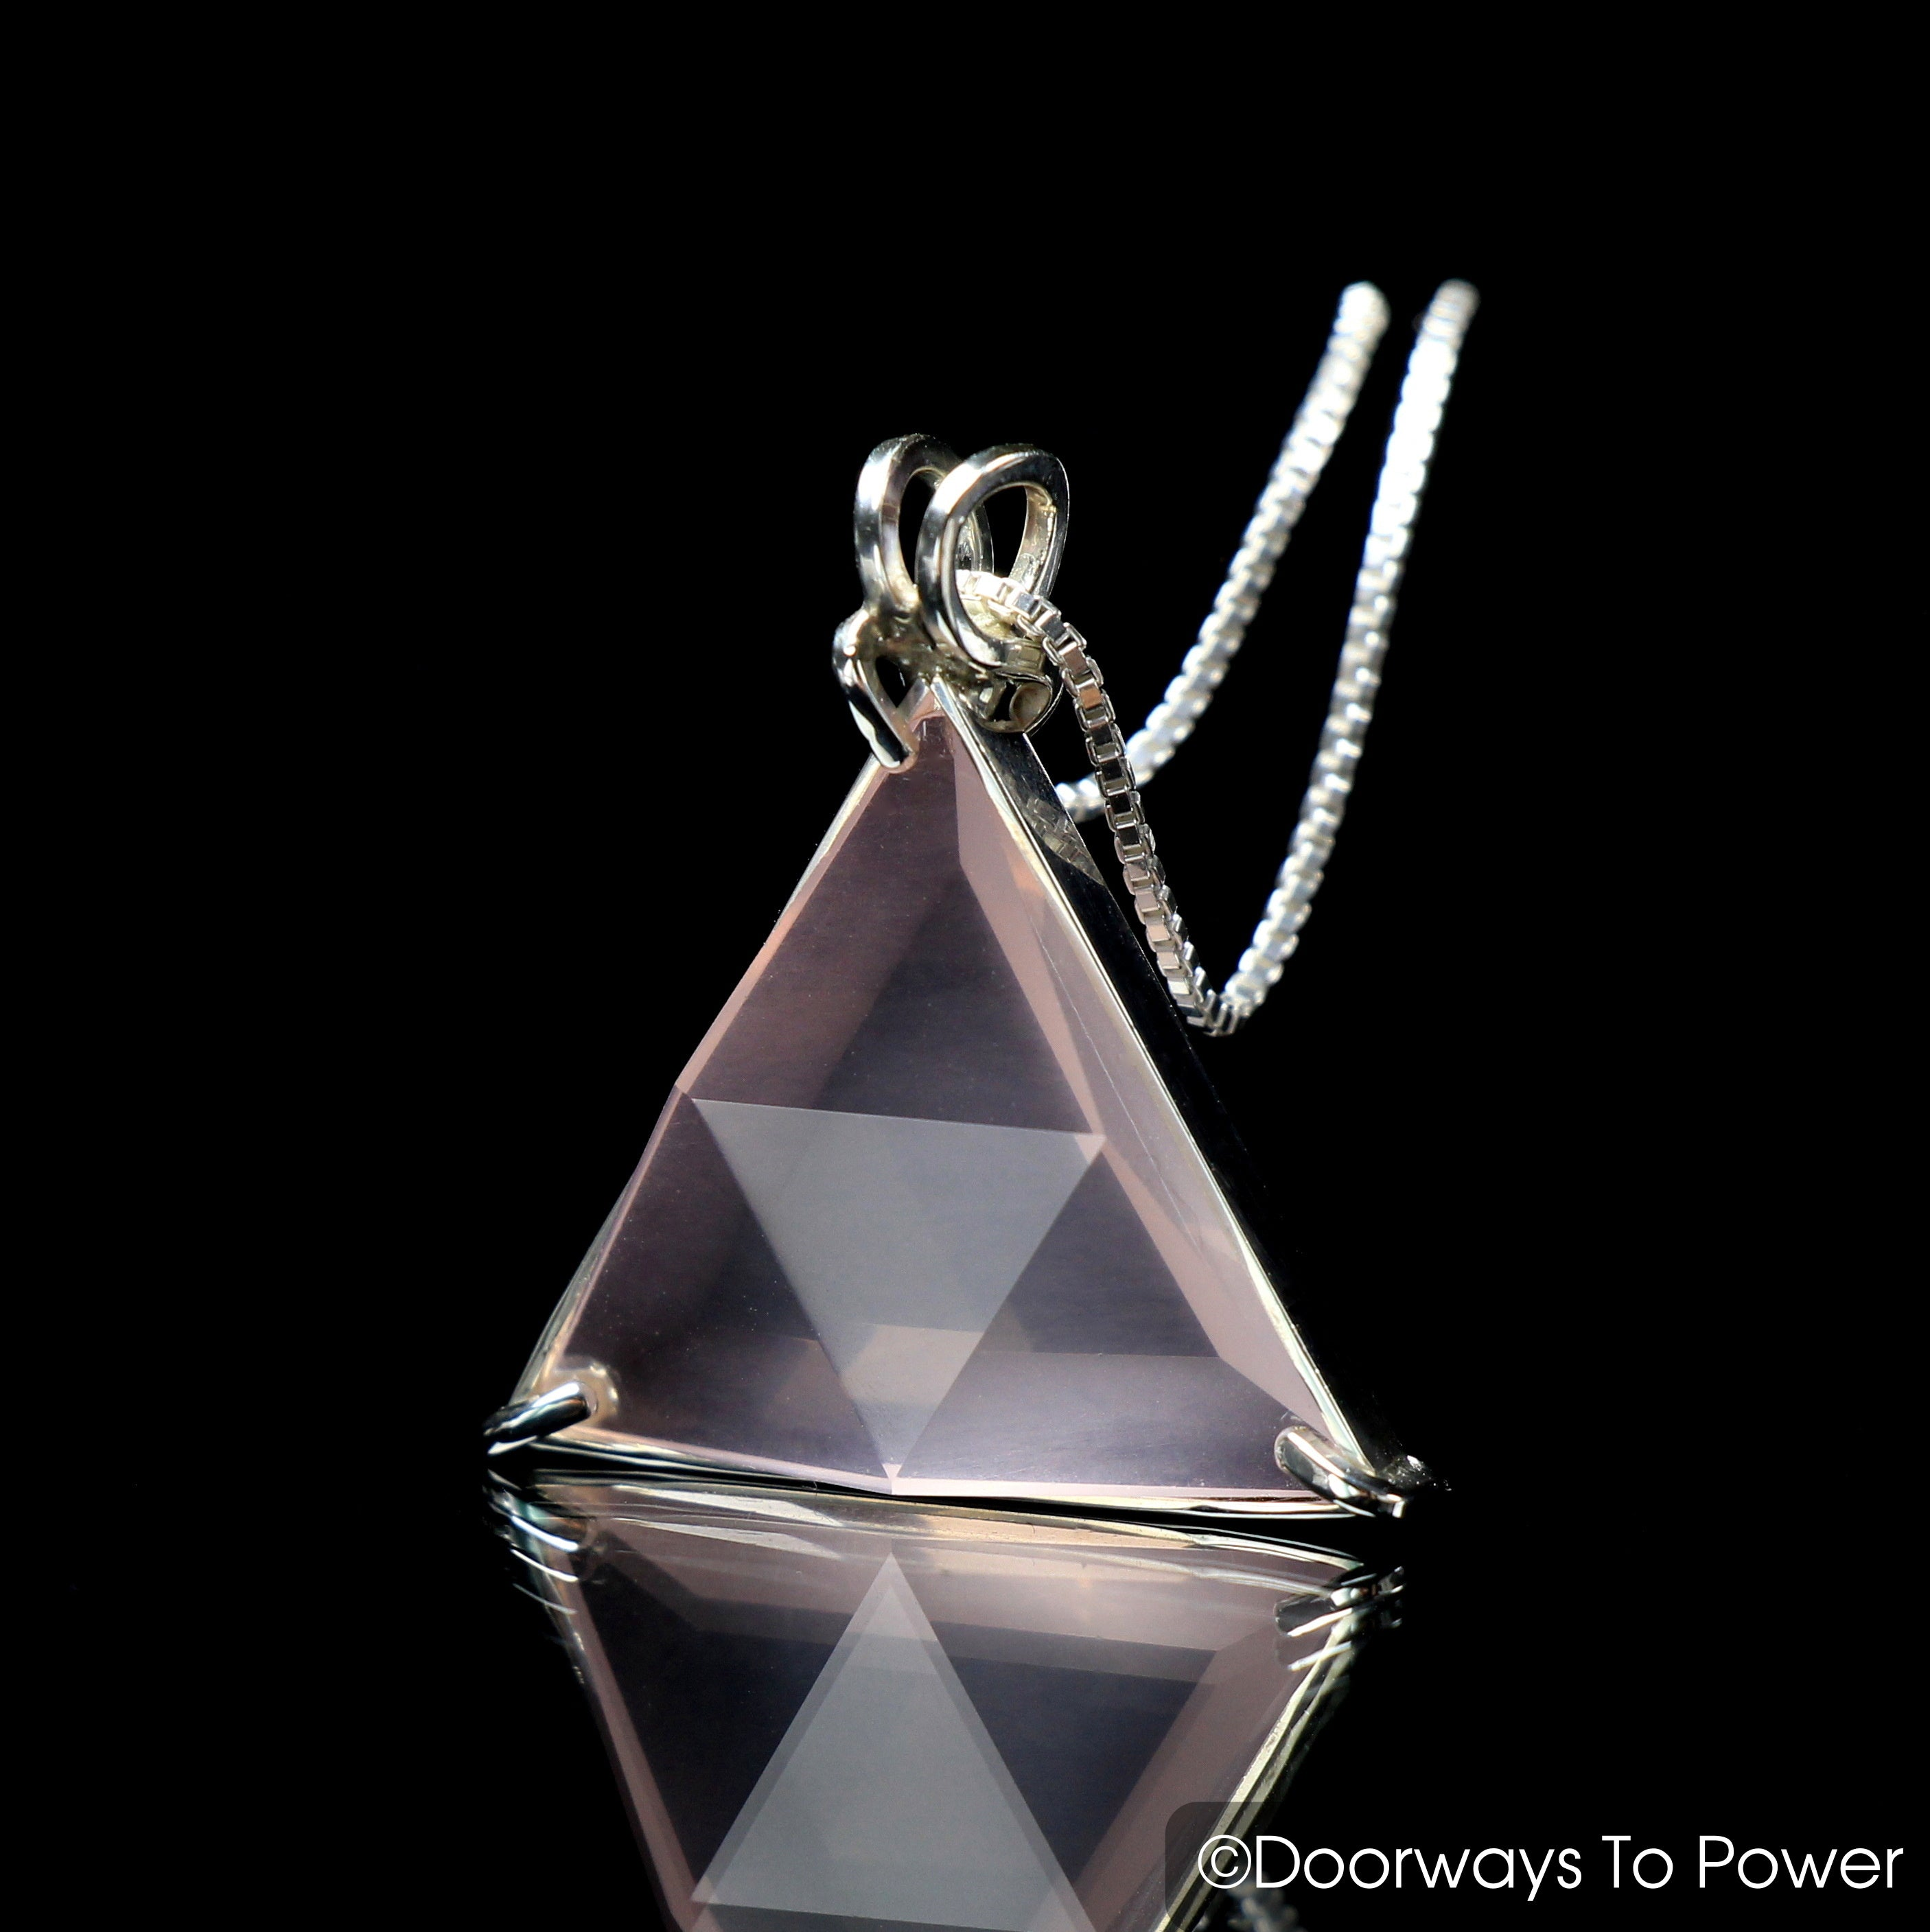 morganite with power doorways aura magician to pendants stone collections pendant aqua